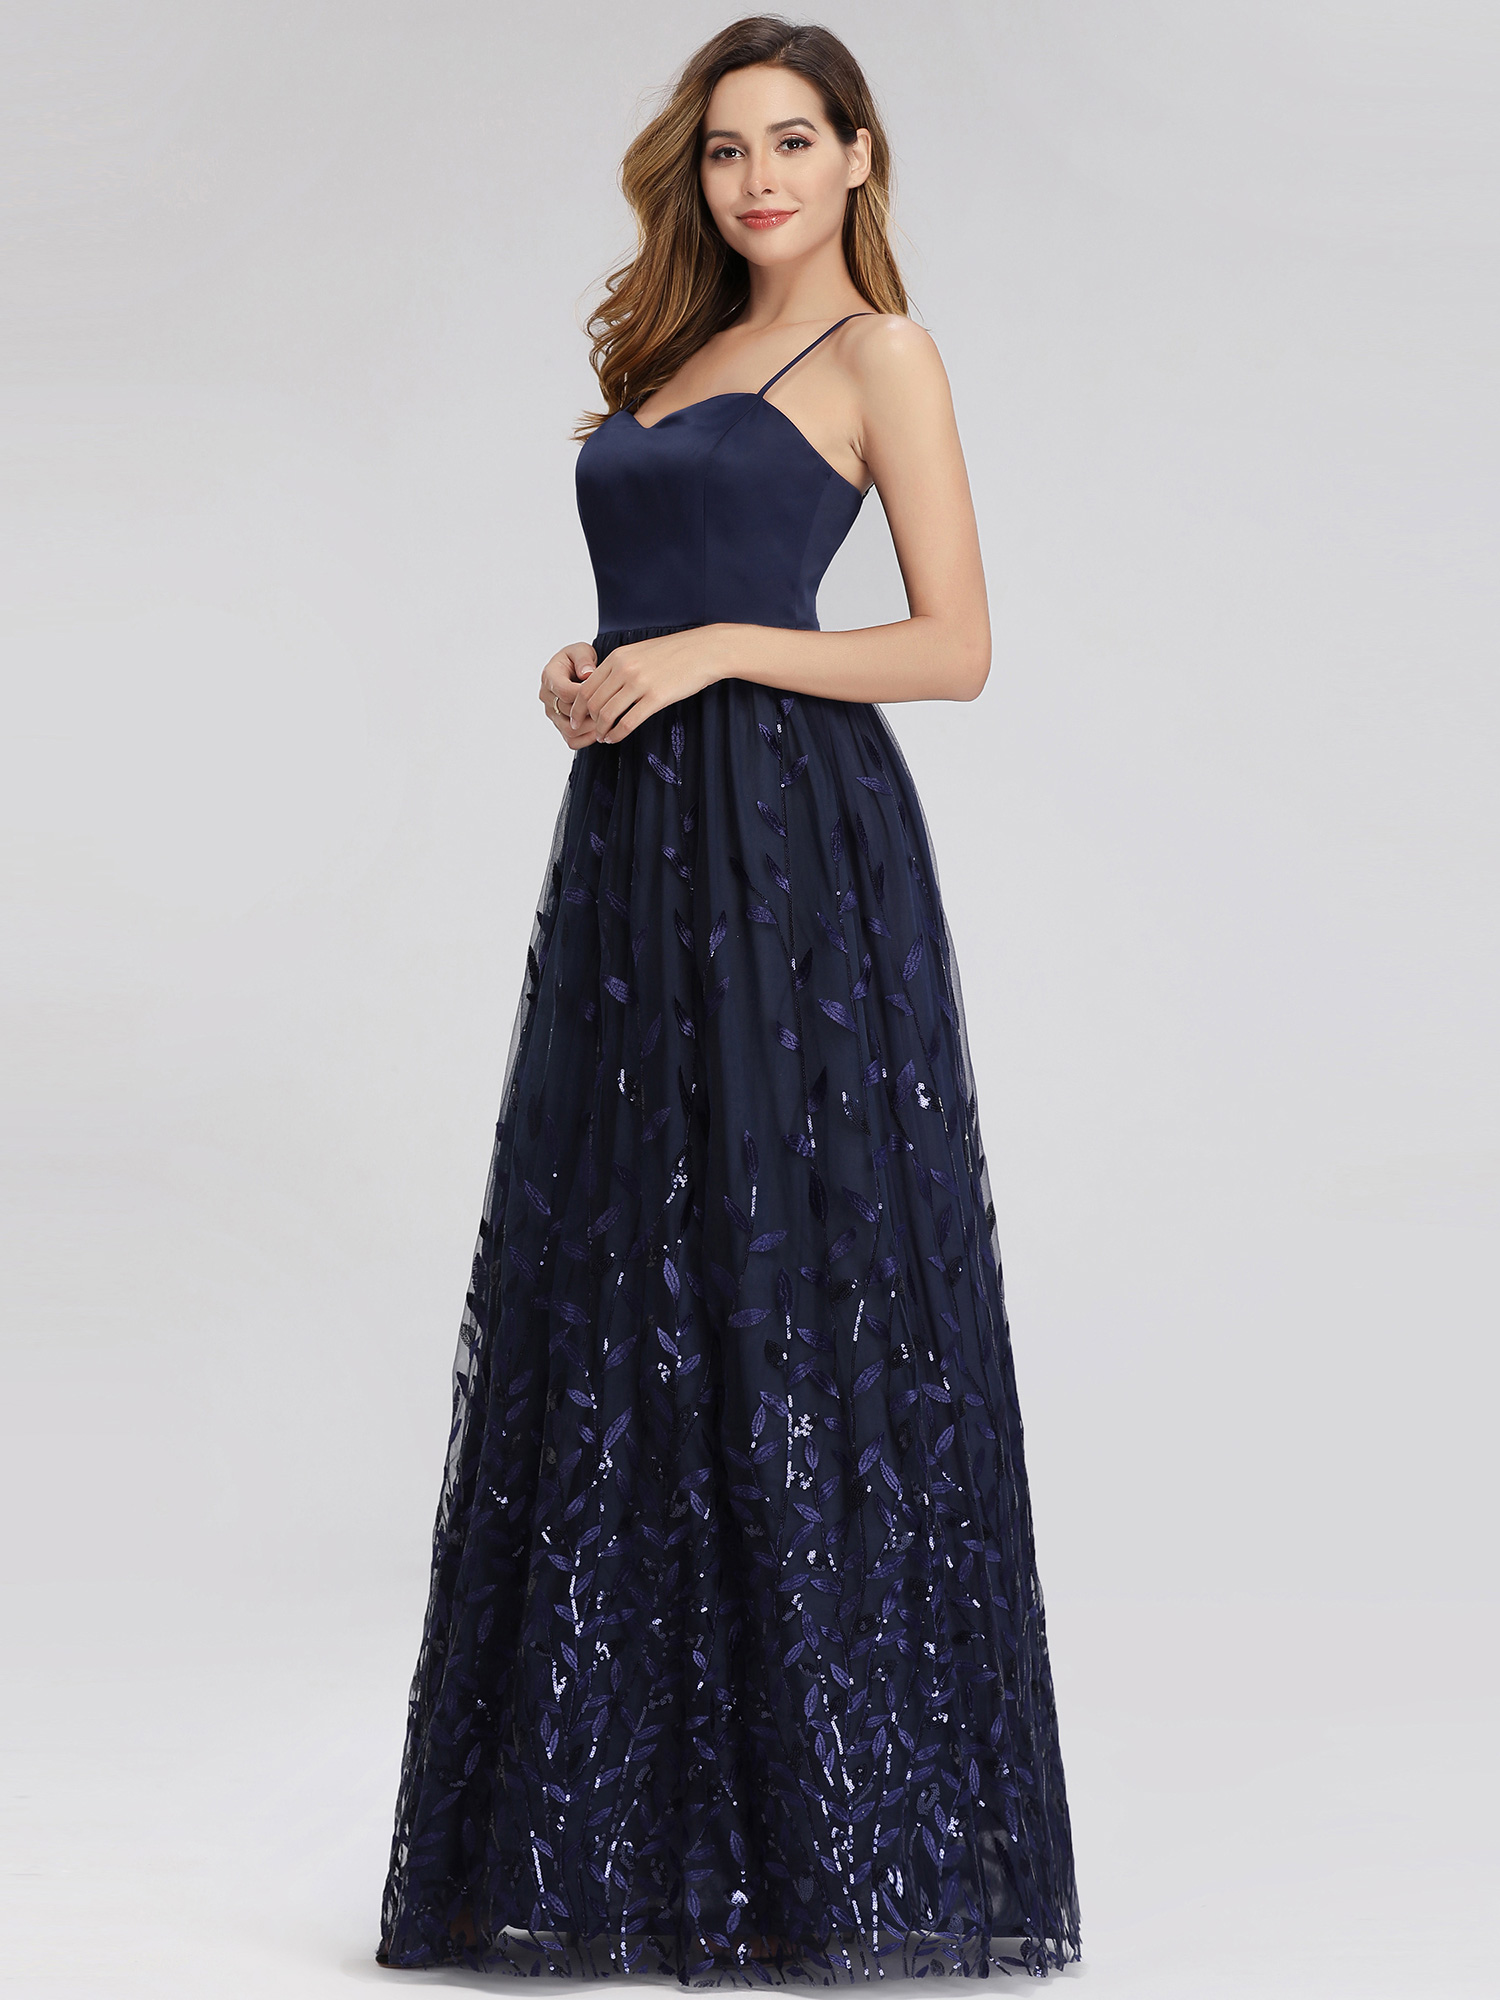 Ever-pretty-Women-A-line-Formal-Cocktail-Party-Dresses-Homecoming-Evening-Proms thumbnail 6